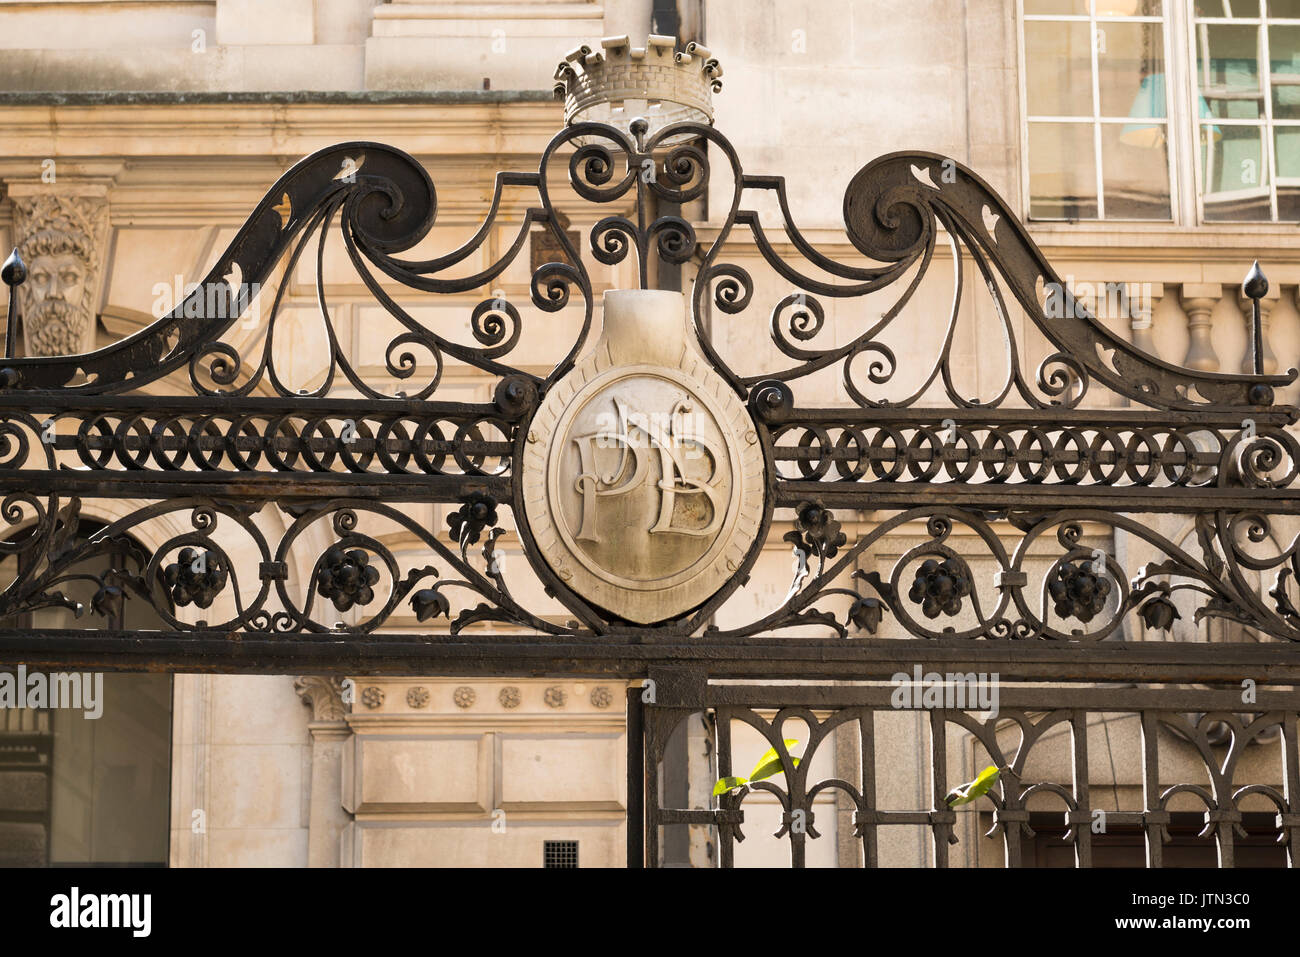 UK City of London Financial District ornate wrought iron metalwork entrance to Adams Court gold golden crown plaque PNB - Stock Image